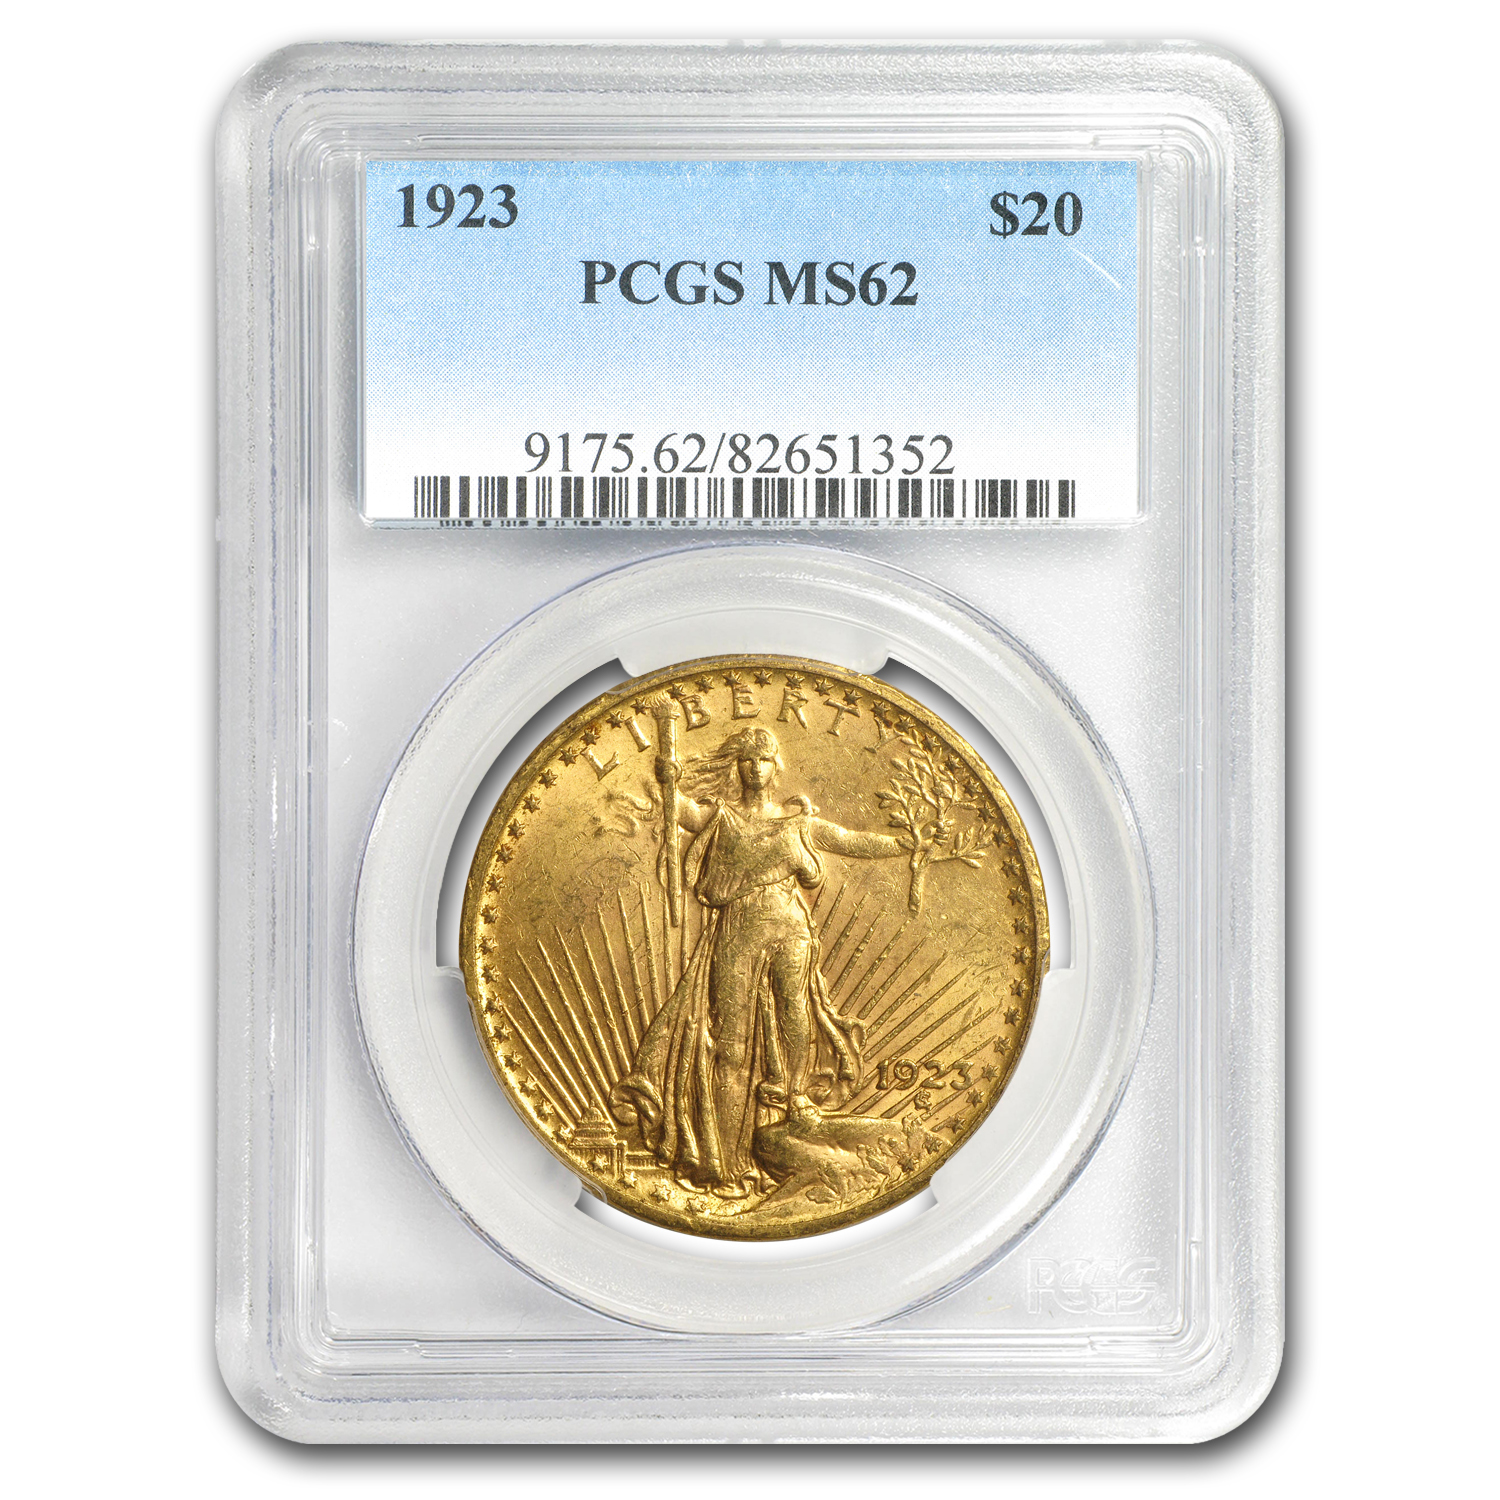 1923 $20 St. Gaudens Gold Double Eagle - MS-62 PCGS